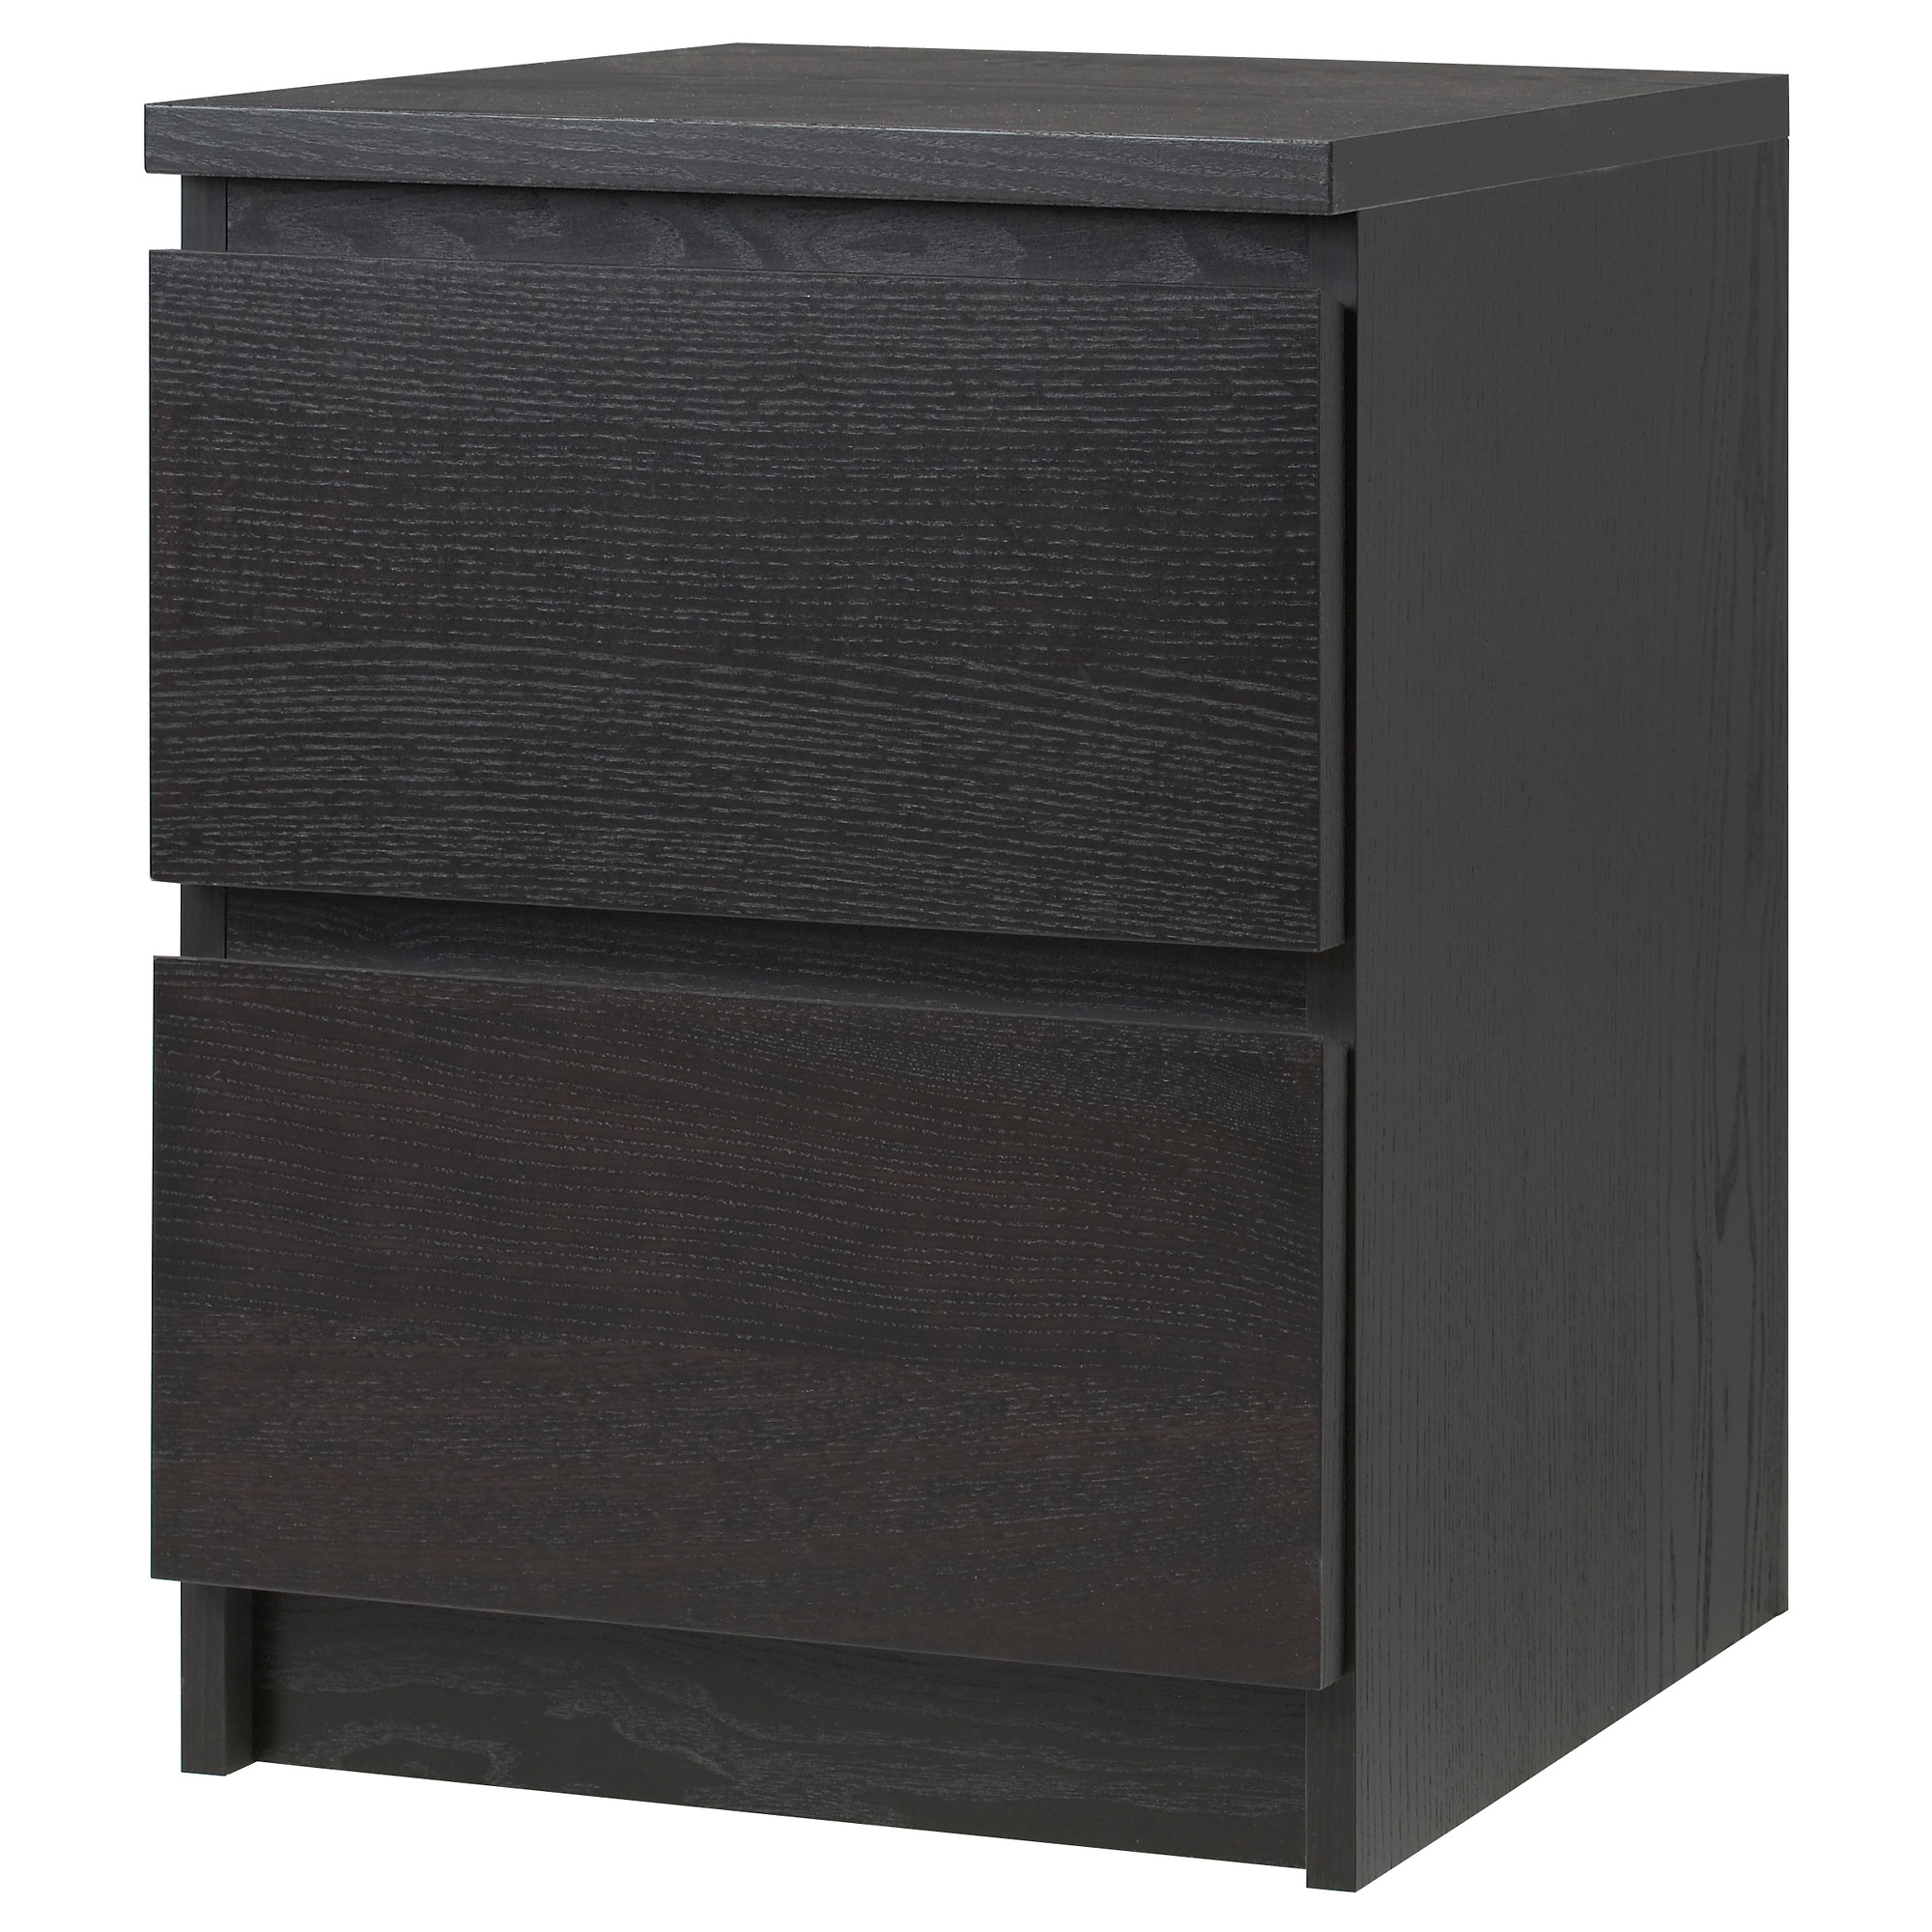 ikea drawers gumtree sydney. Black Bedroom Furniture Sets. Home Design Ideas